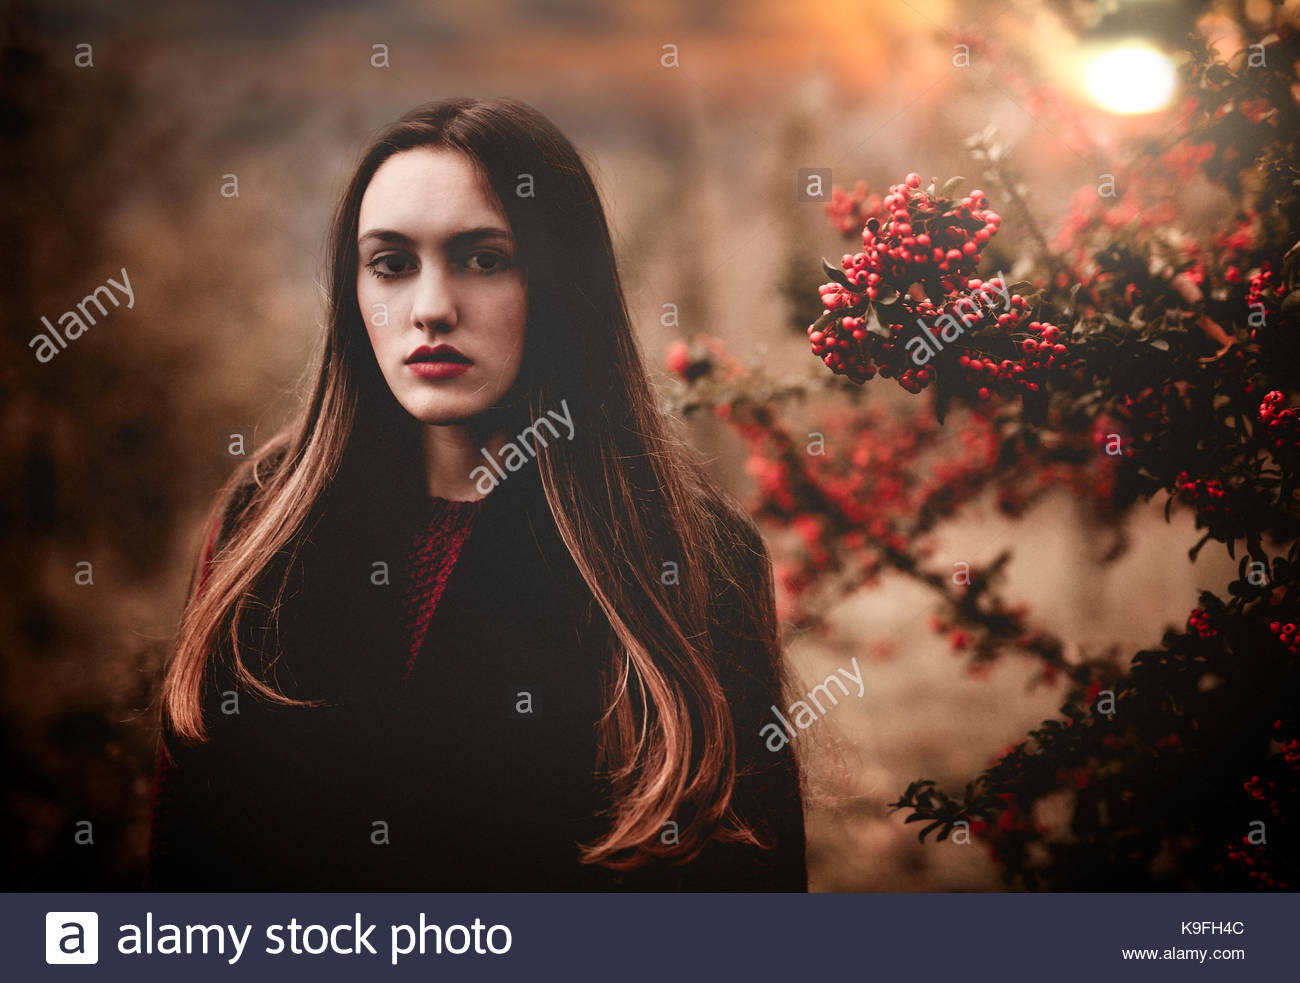 Girl standing near a berry plant, at sunset, in the woods - Stock Image